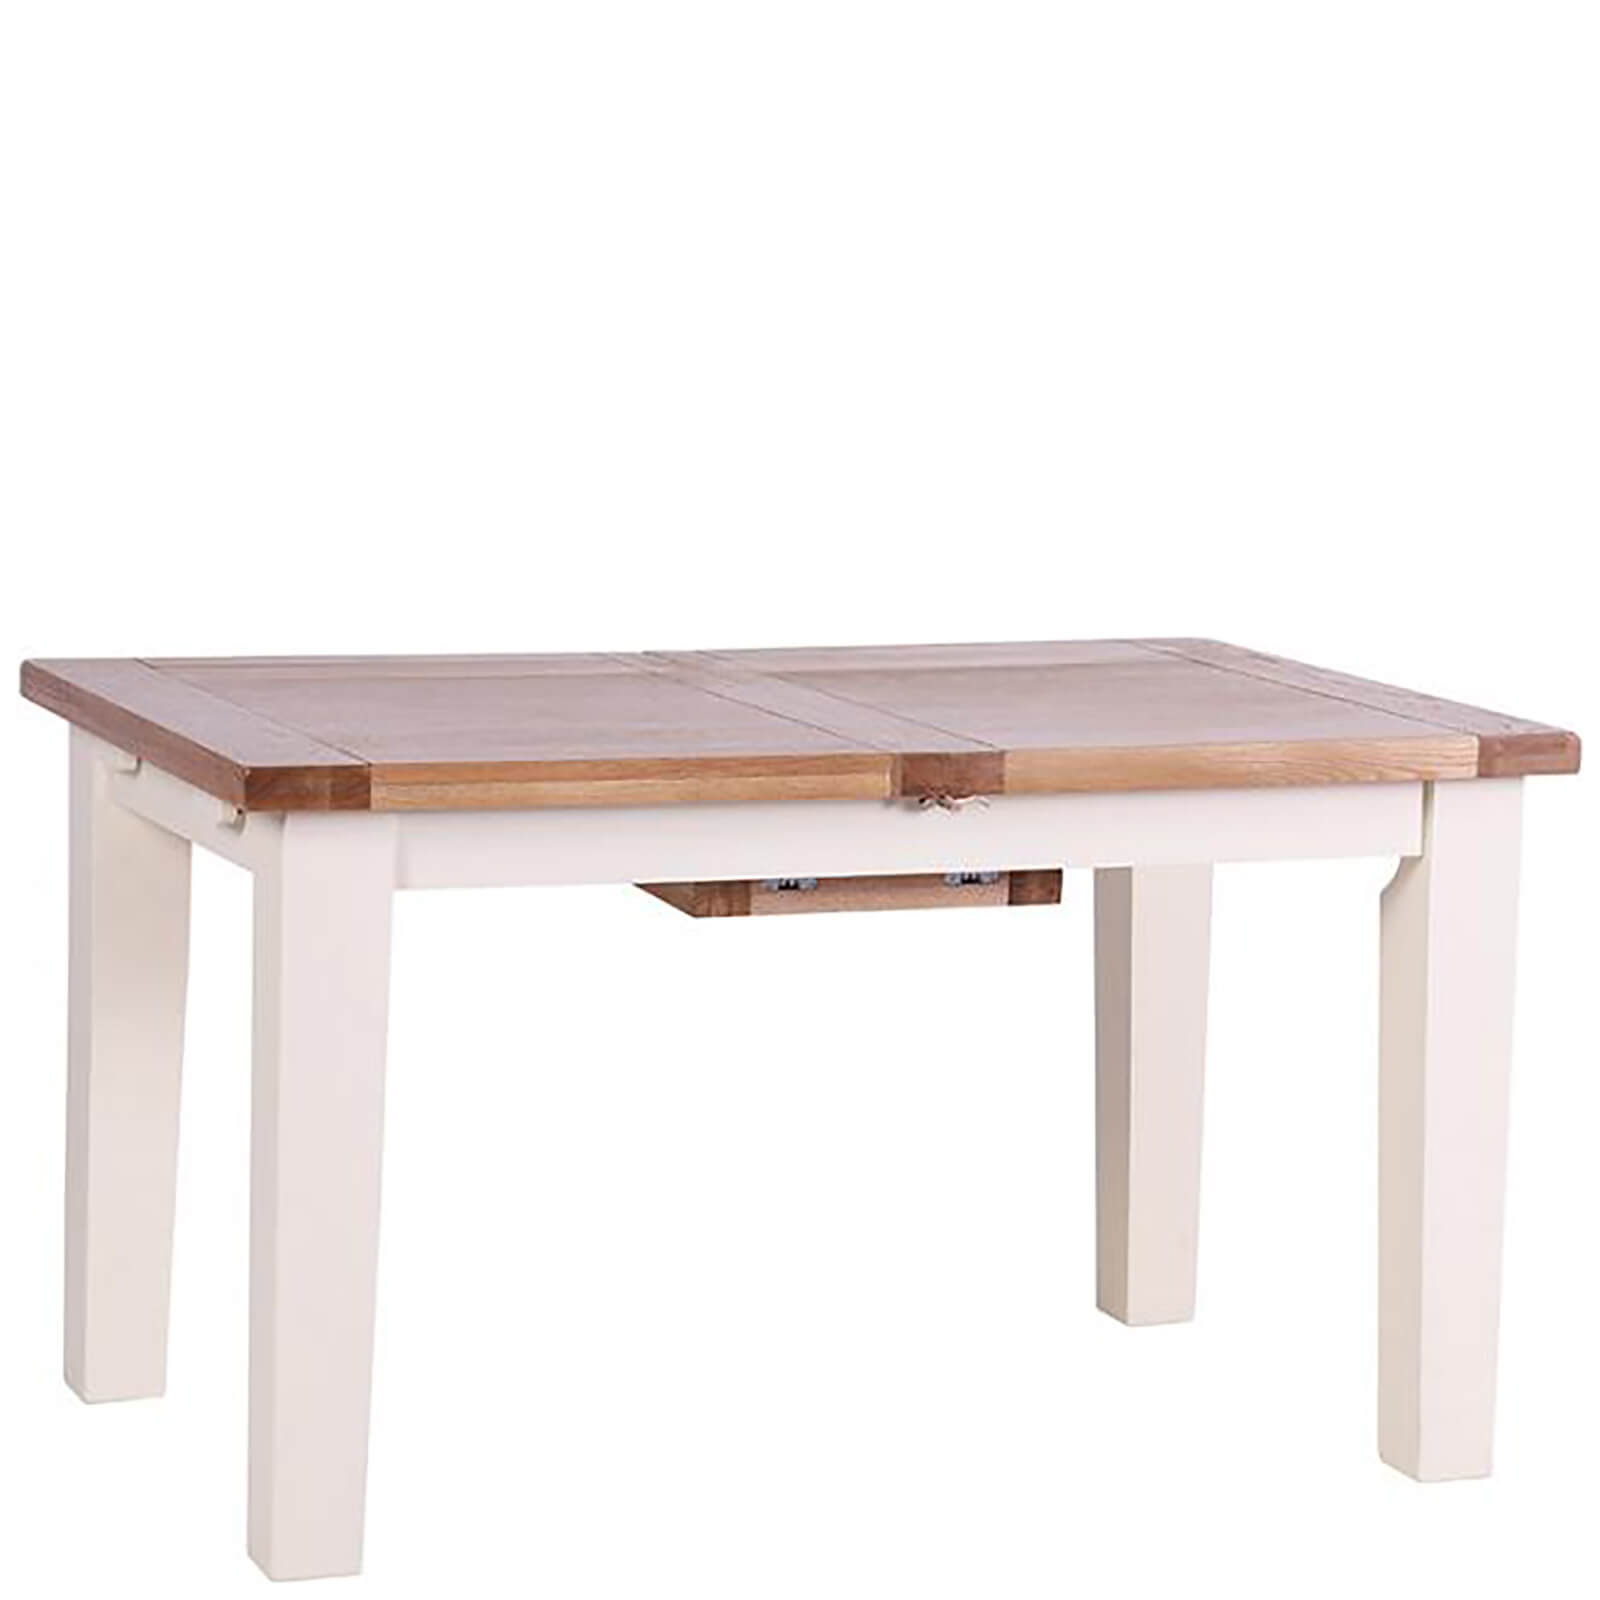 Vancouver Expressions Linen Extension Dining Table (1.8m - 2.3m)